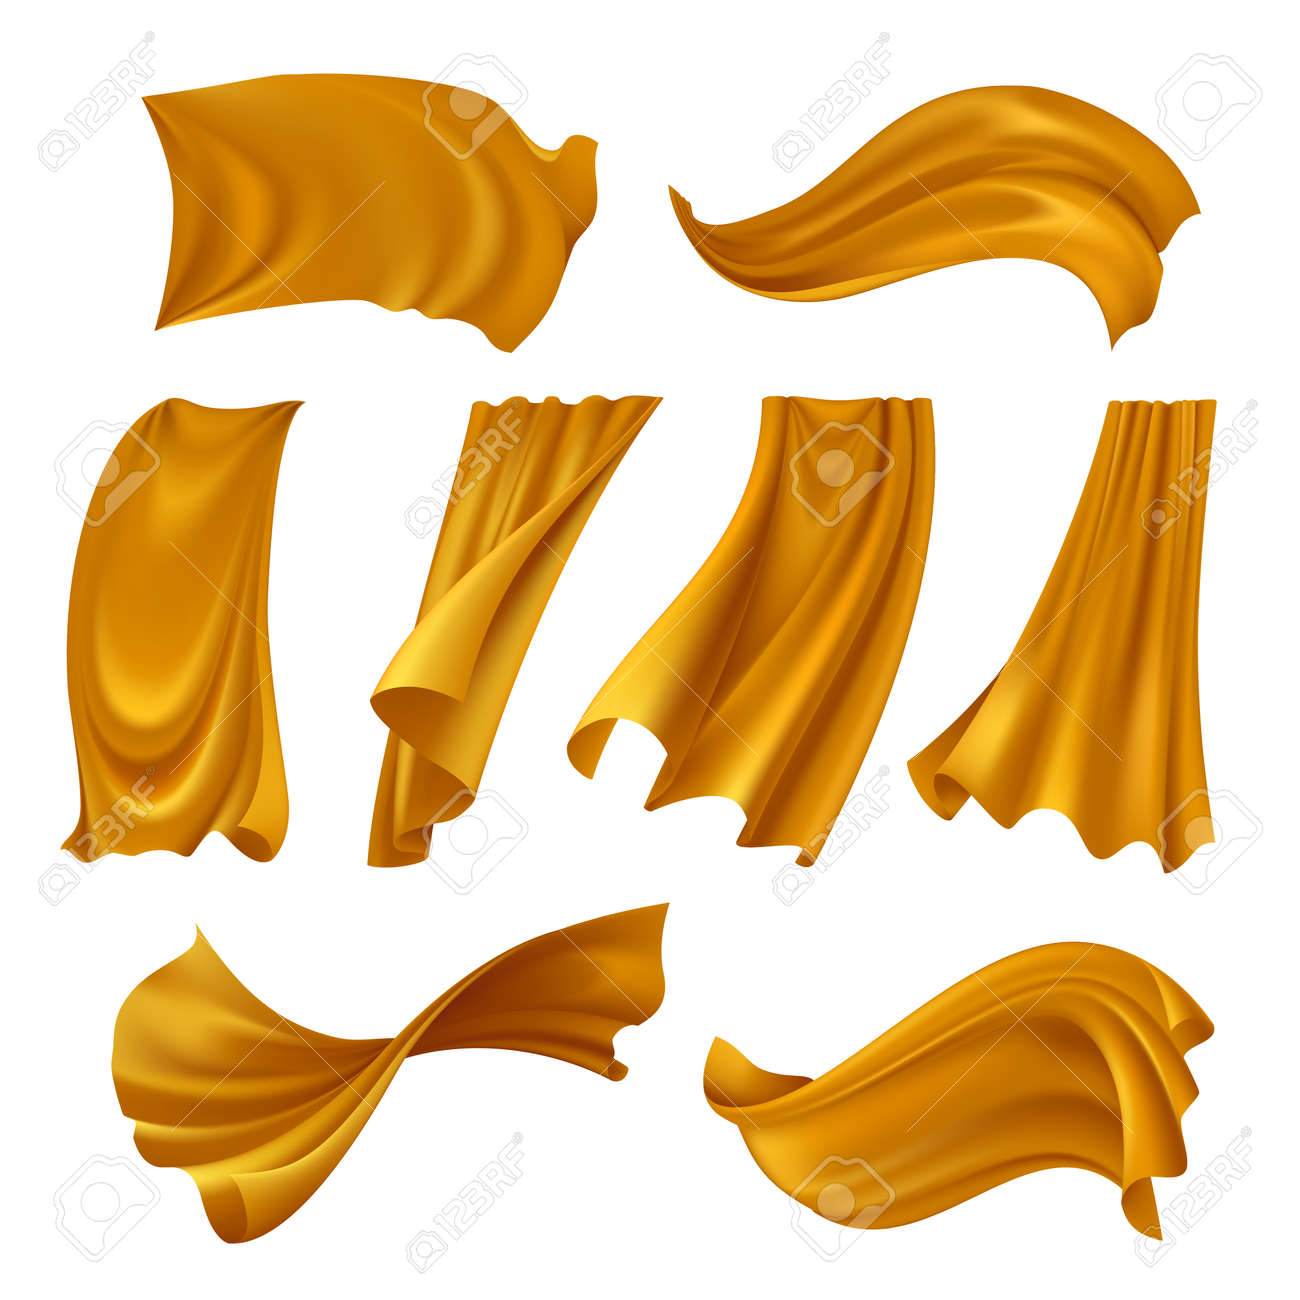 Set of realistic gold pieces of cloth fluttering on wind isolated on white background vector illustration - 165885335